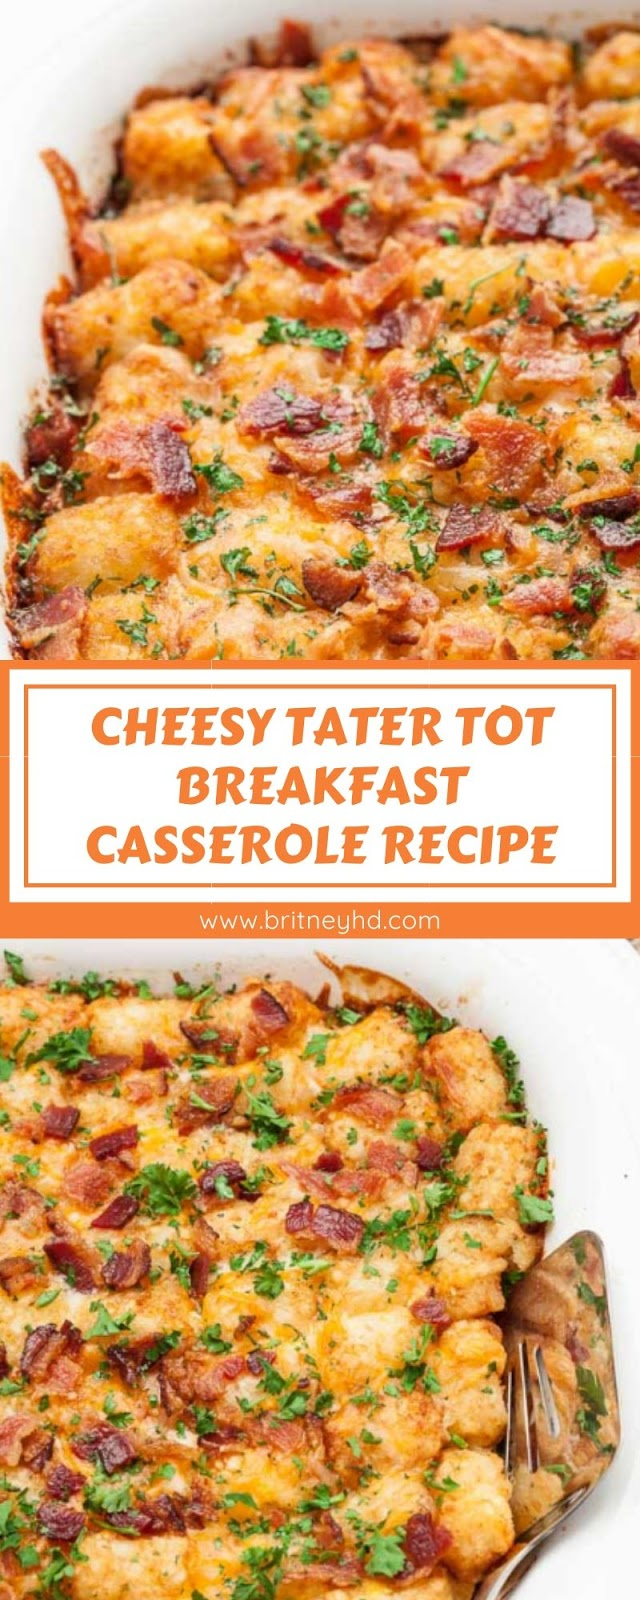 CHEESY TATER TOT BREAKFAST CASSEROLE RECIPE